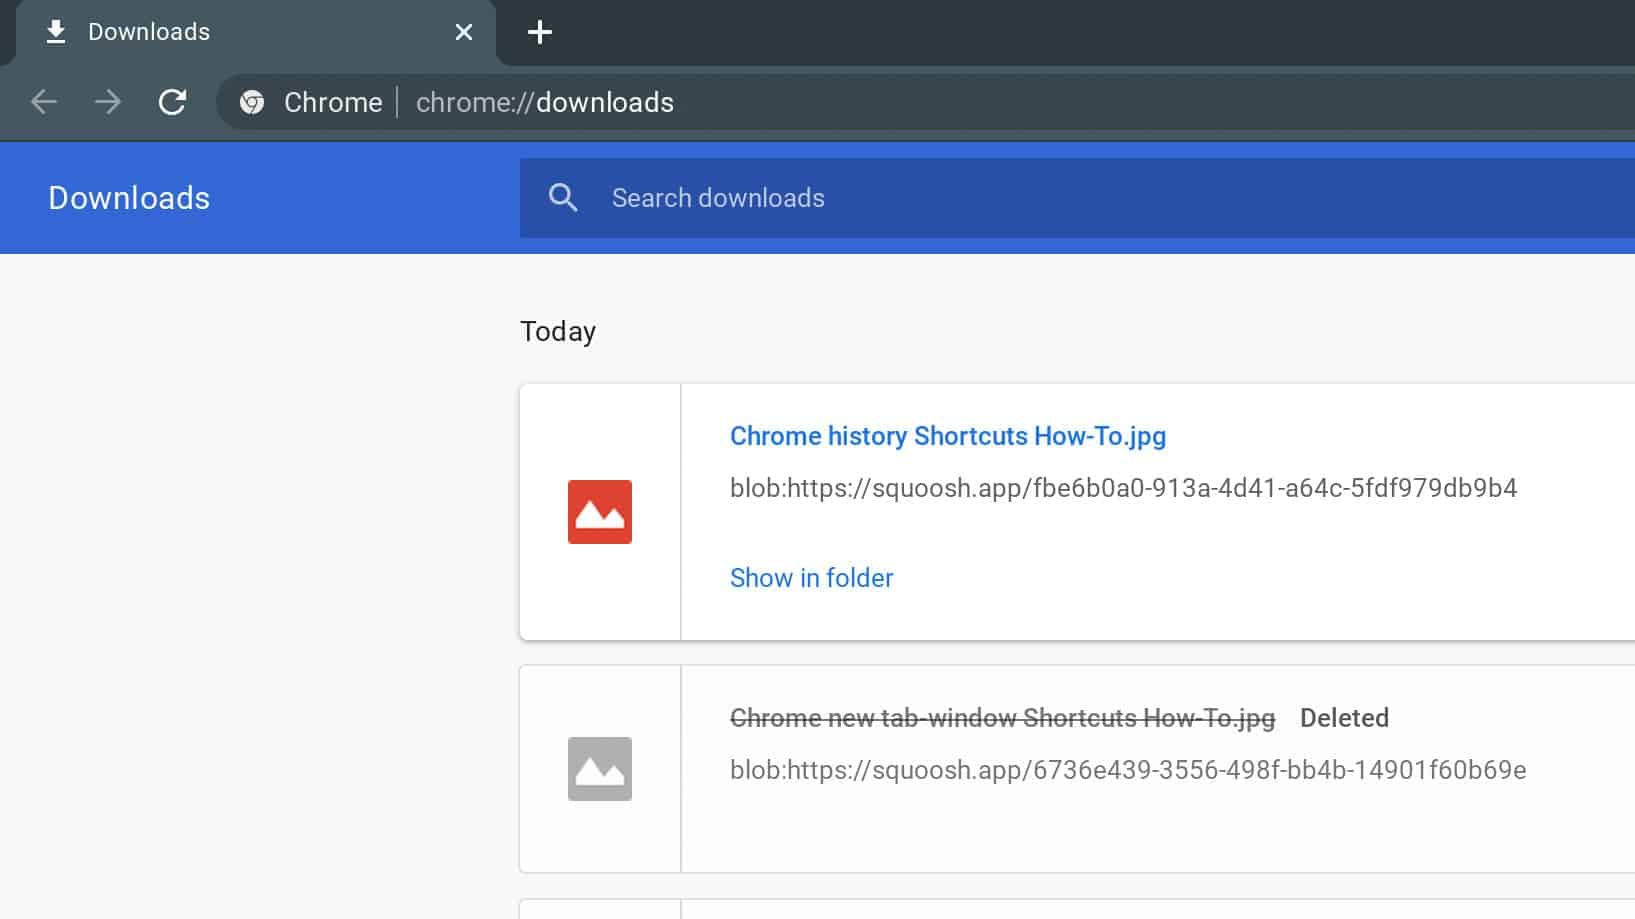 Chrome Downloads Shortcuts How To